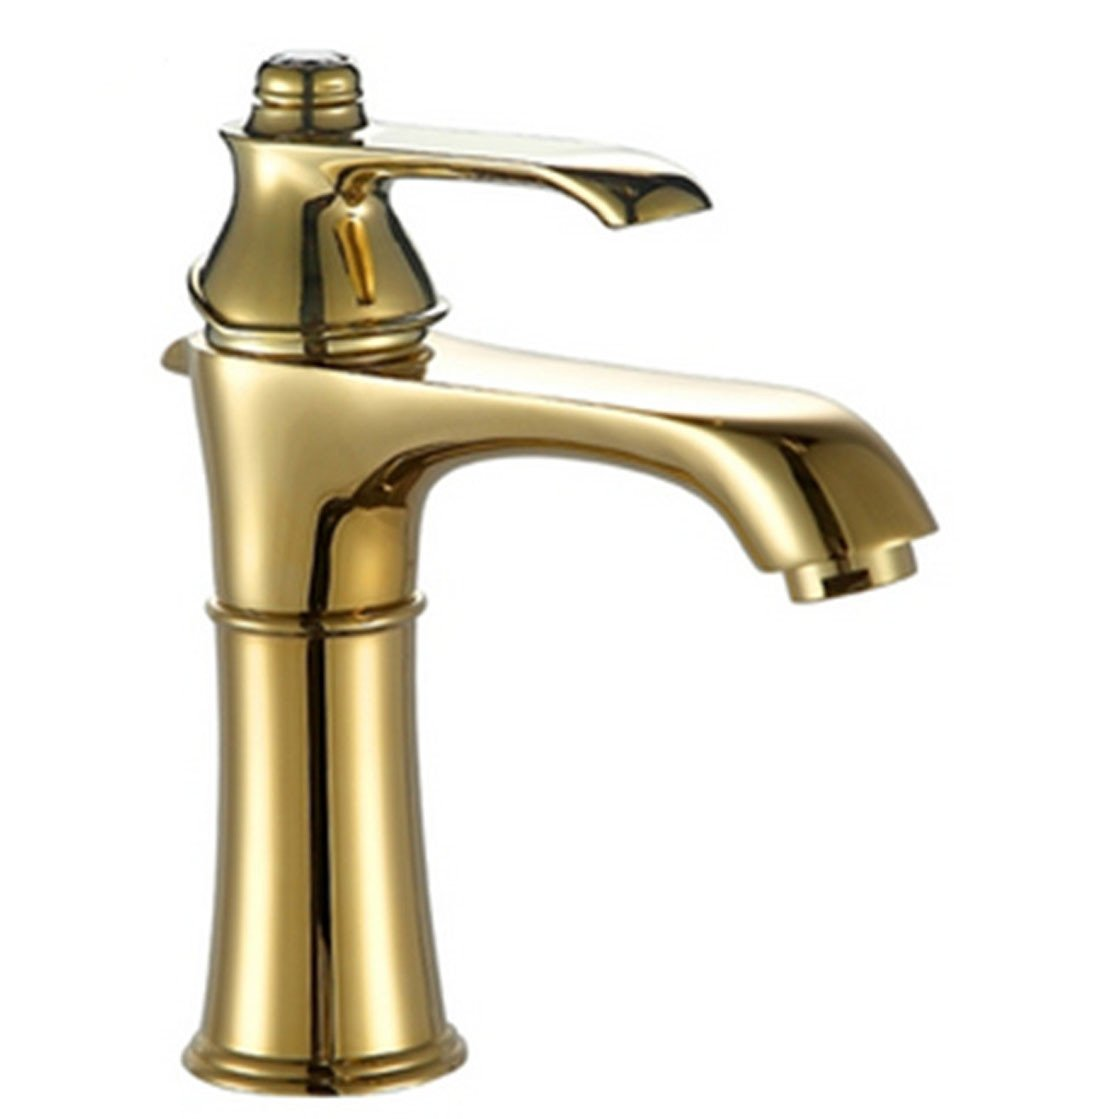 MDRW-Single gold single hole hot and cold basin faucet by MDRW